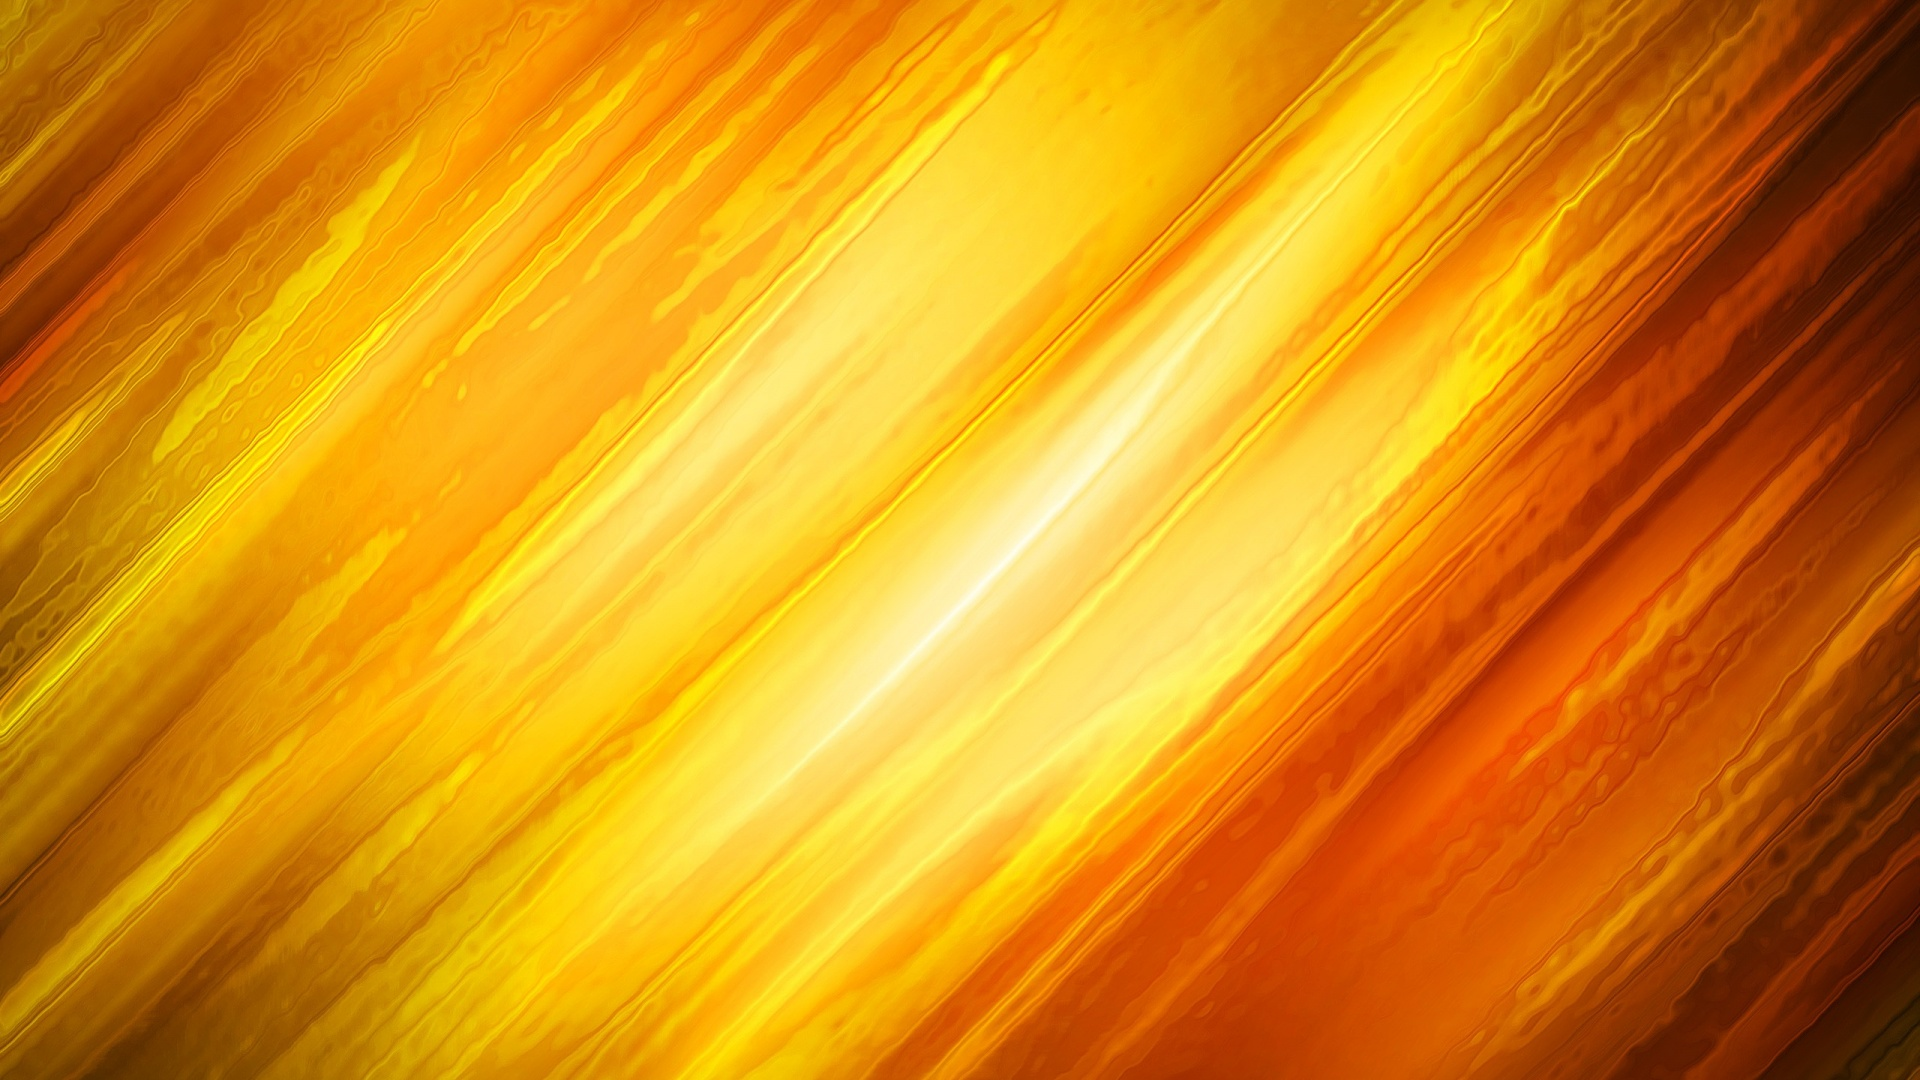 abstract yellow and orange background wallpapers 35310 1920x1080jpg 1920x1080